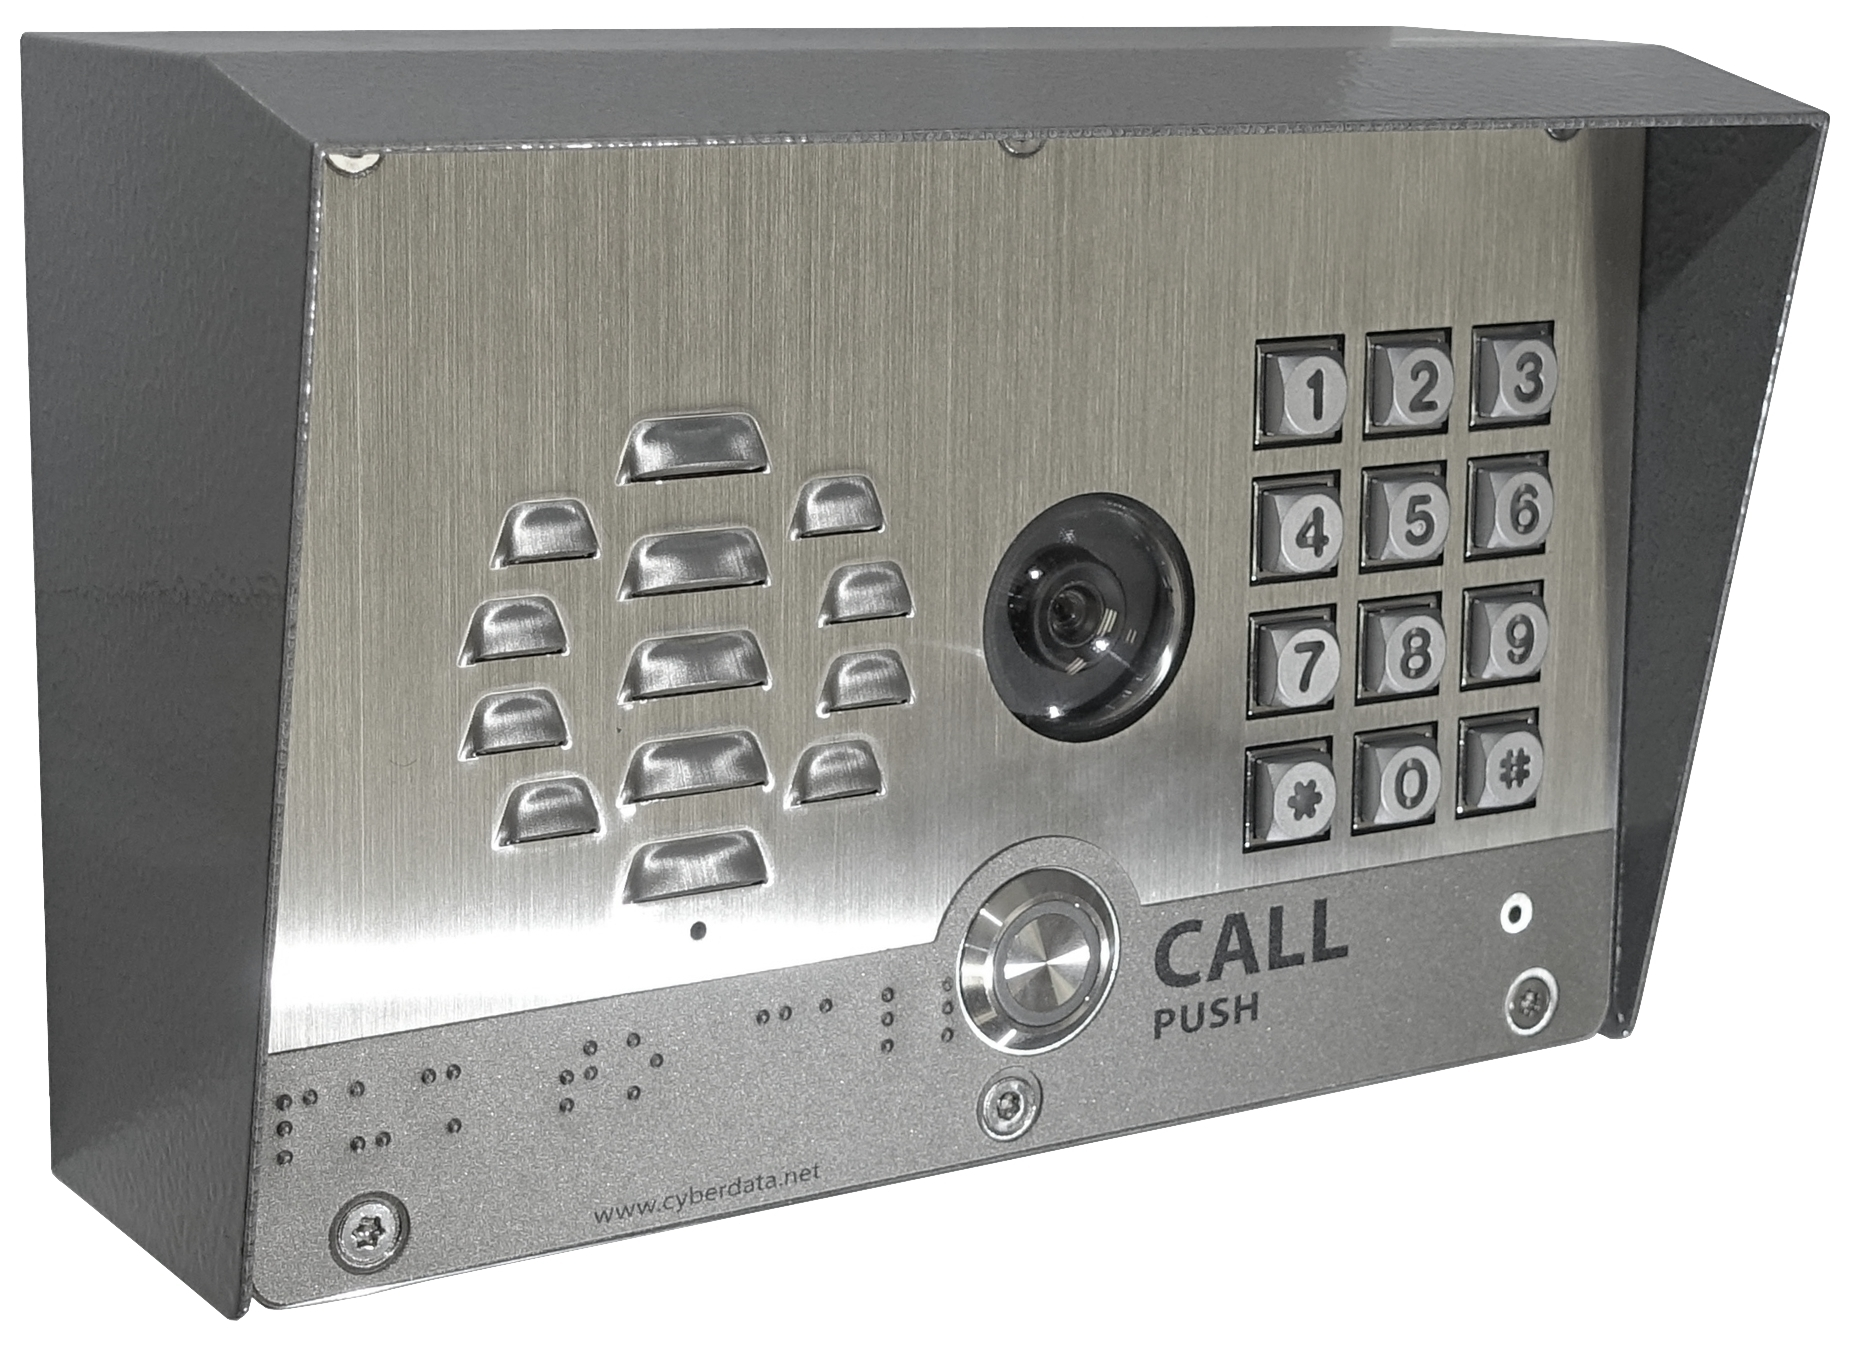 CyberData Introduces CyberSoftPhone, a Free Video Soft Phone